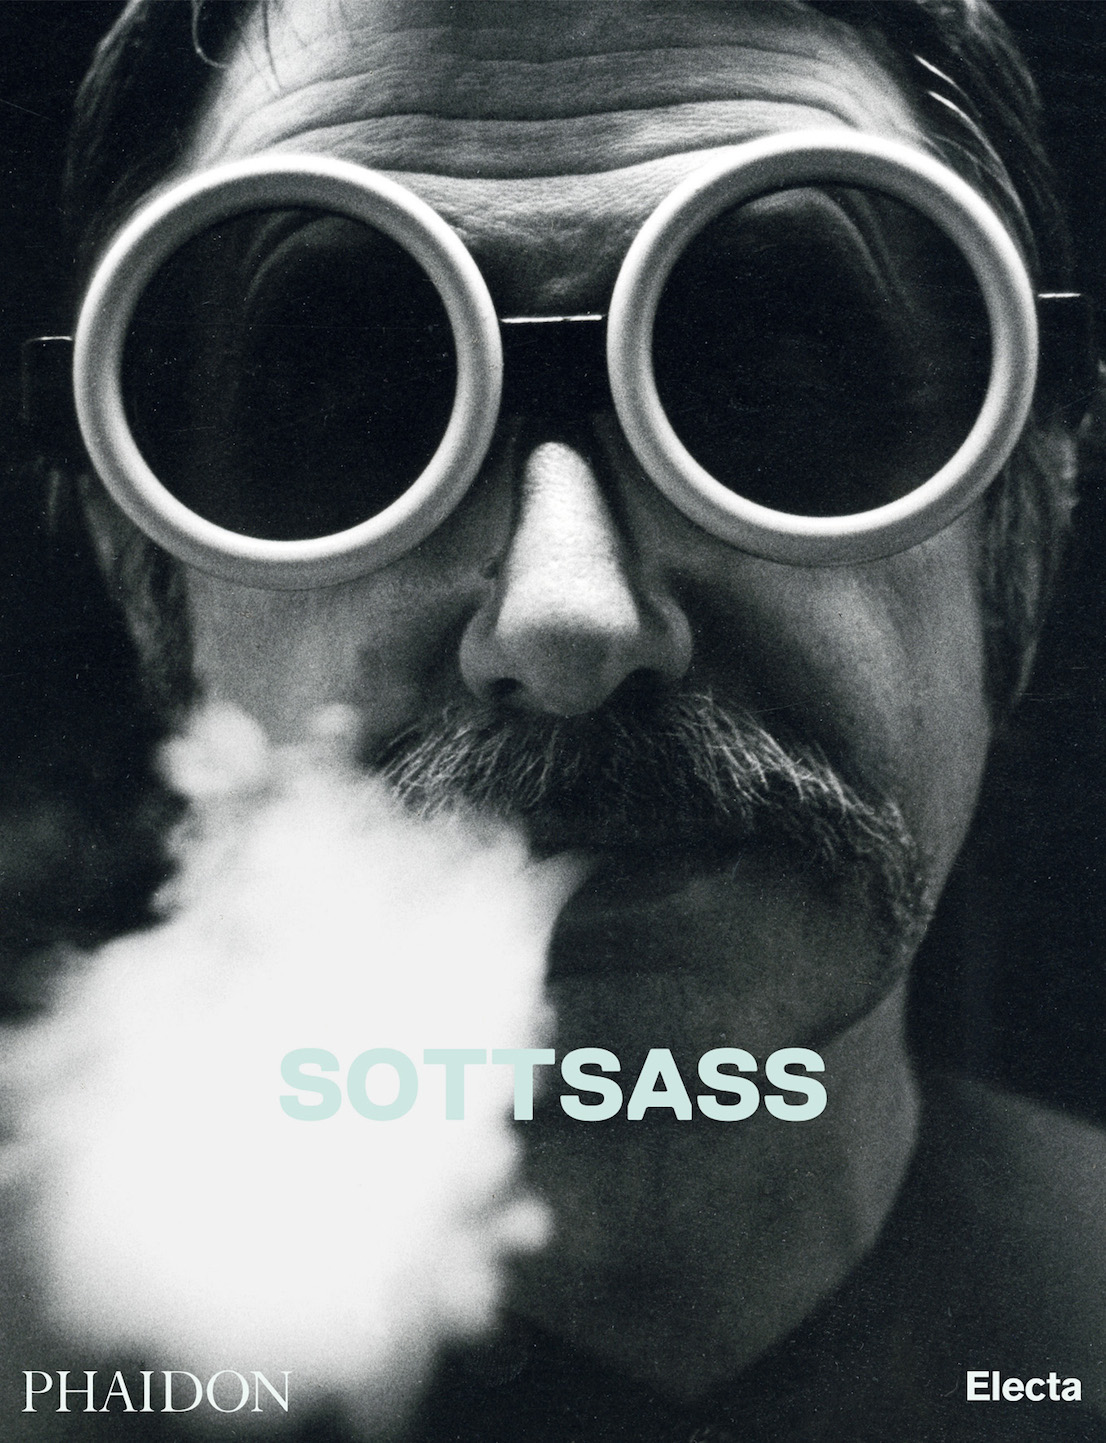 Philippe Thomé - Sottsass